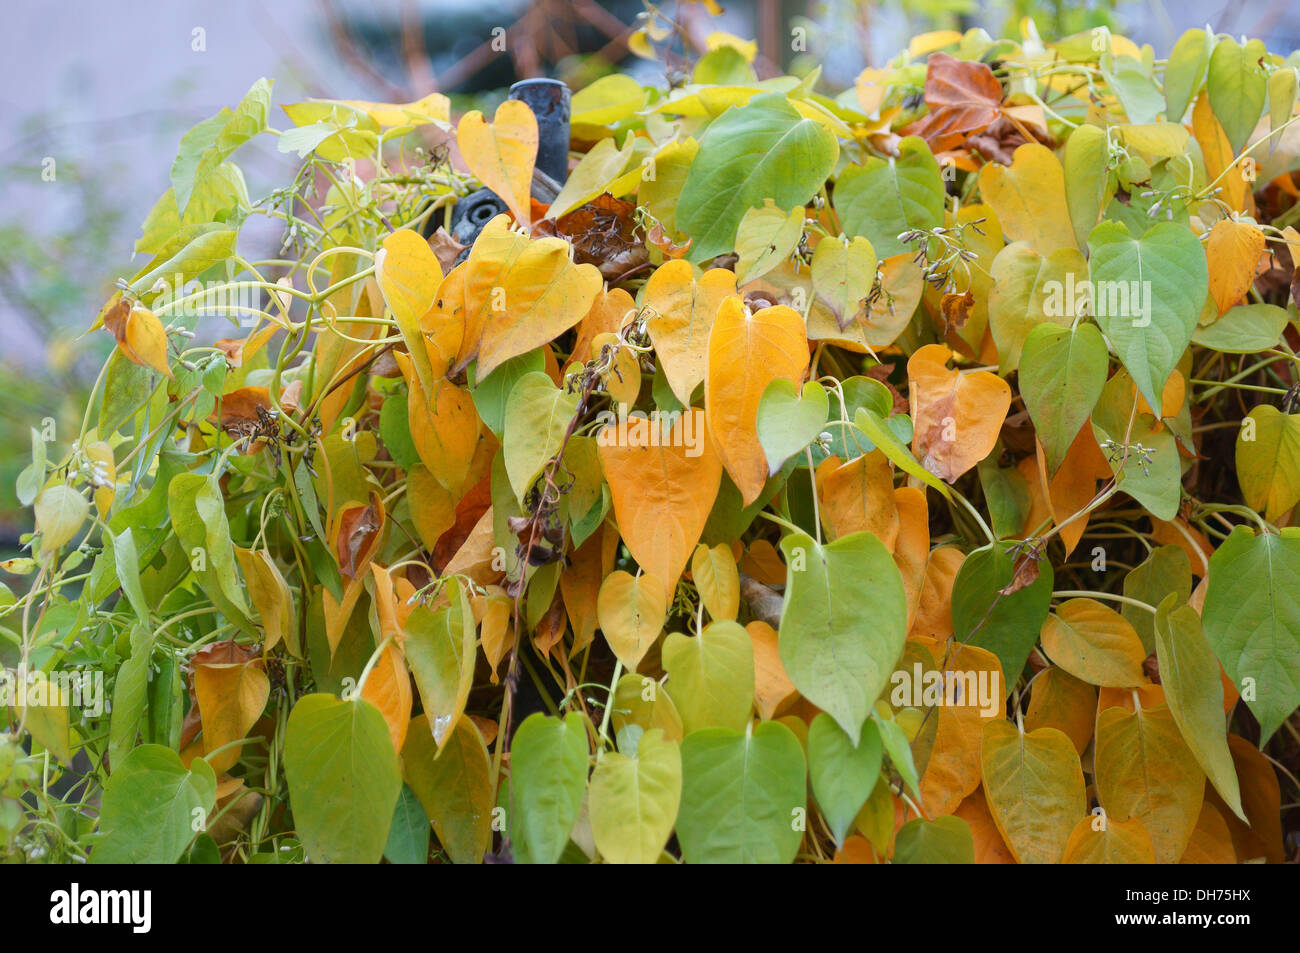 Sewer vines multicolor autumn leaves Paederia scandens - Stock Image